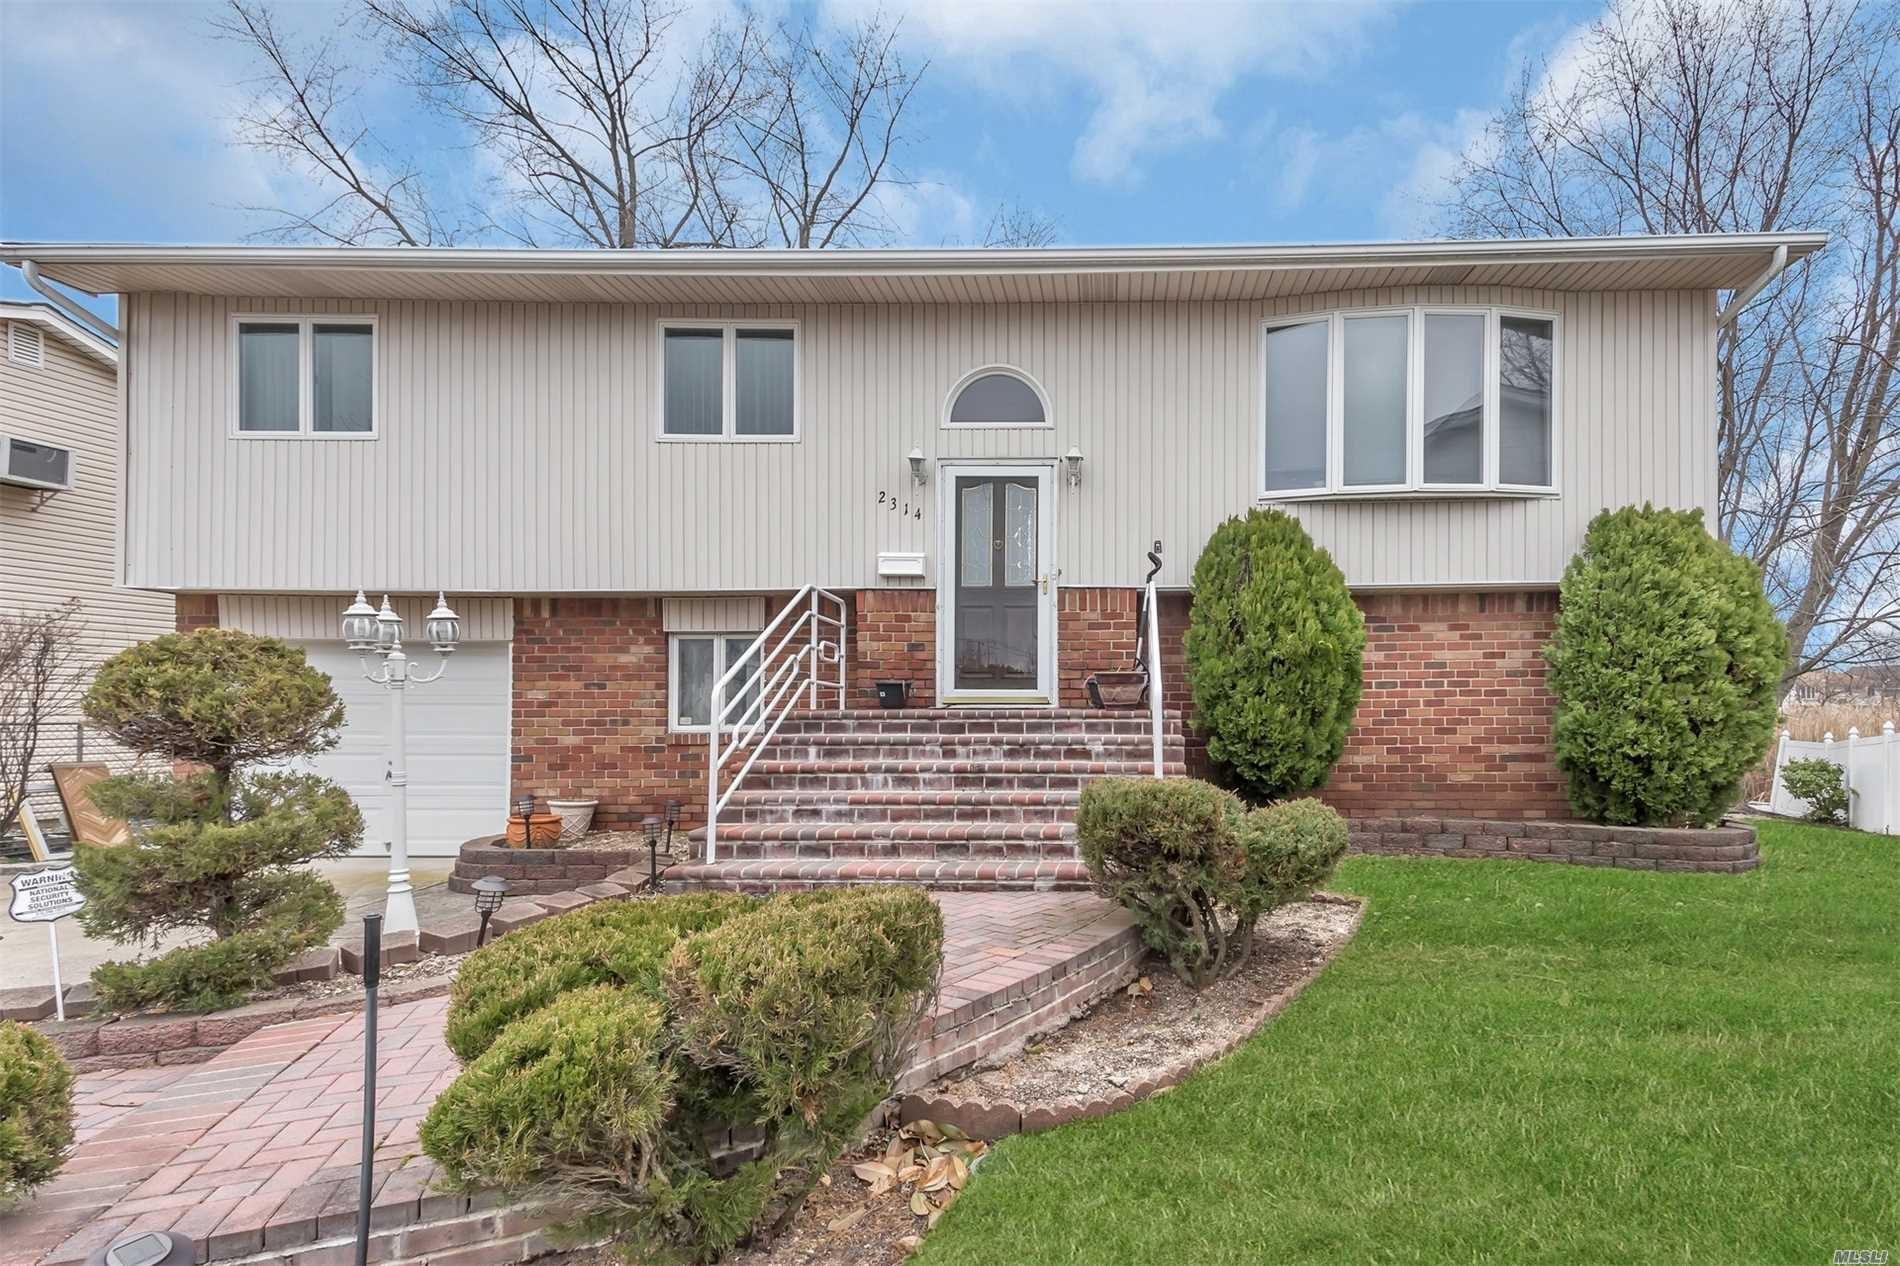 2314 Jeffrey Ct - Merrick, New York